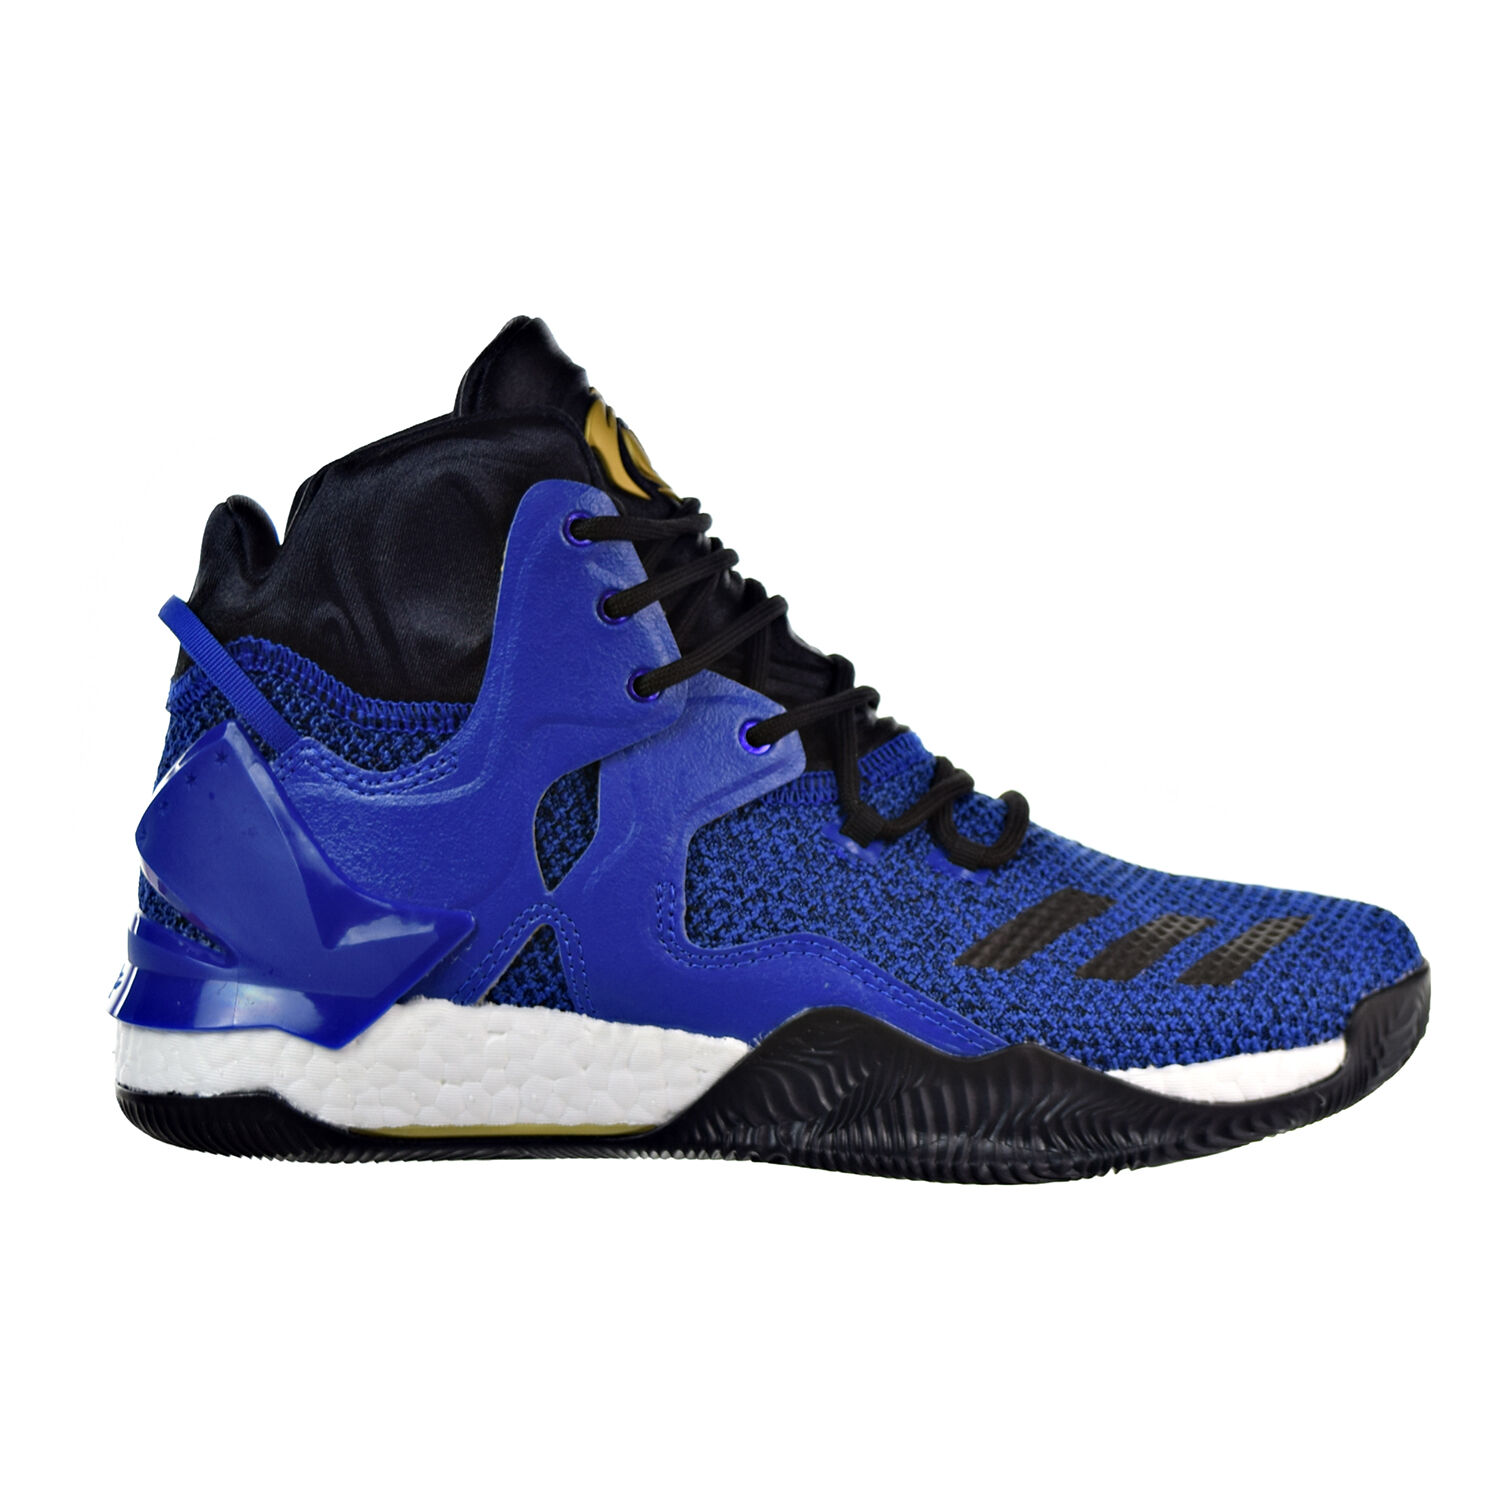 Adidas D Rose 7 Men's Shoes Blue Solid/Black/Metallic Gold bb8290